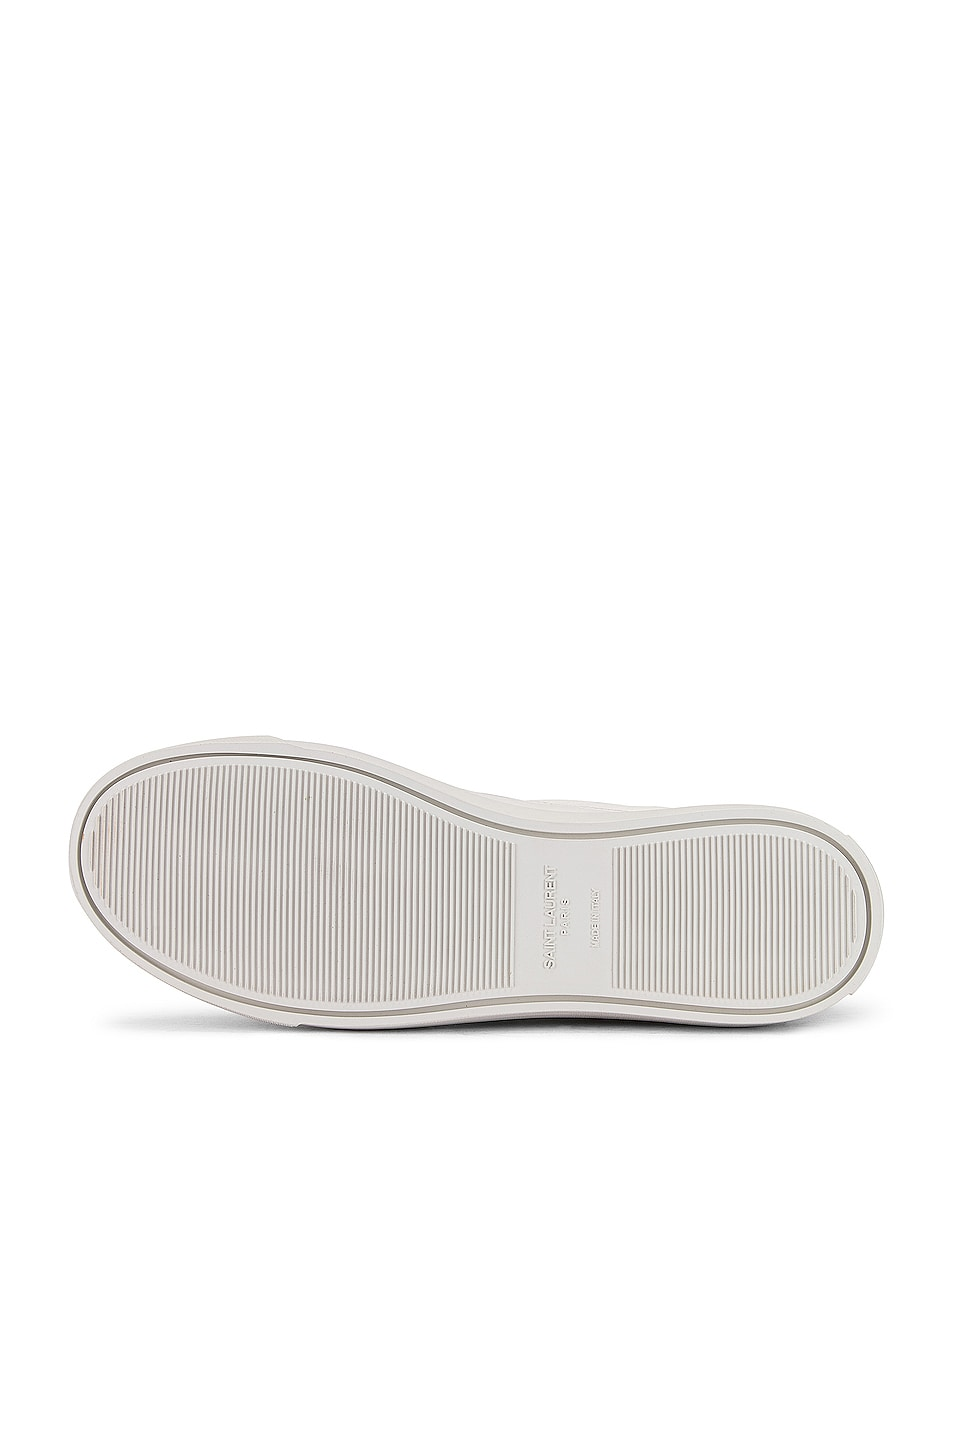 Image 6 of Saint Laurent Andy Velcro Strap Low Top Sneakers in White